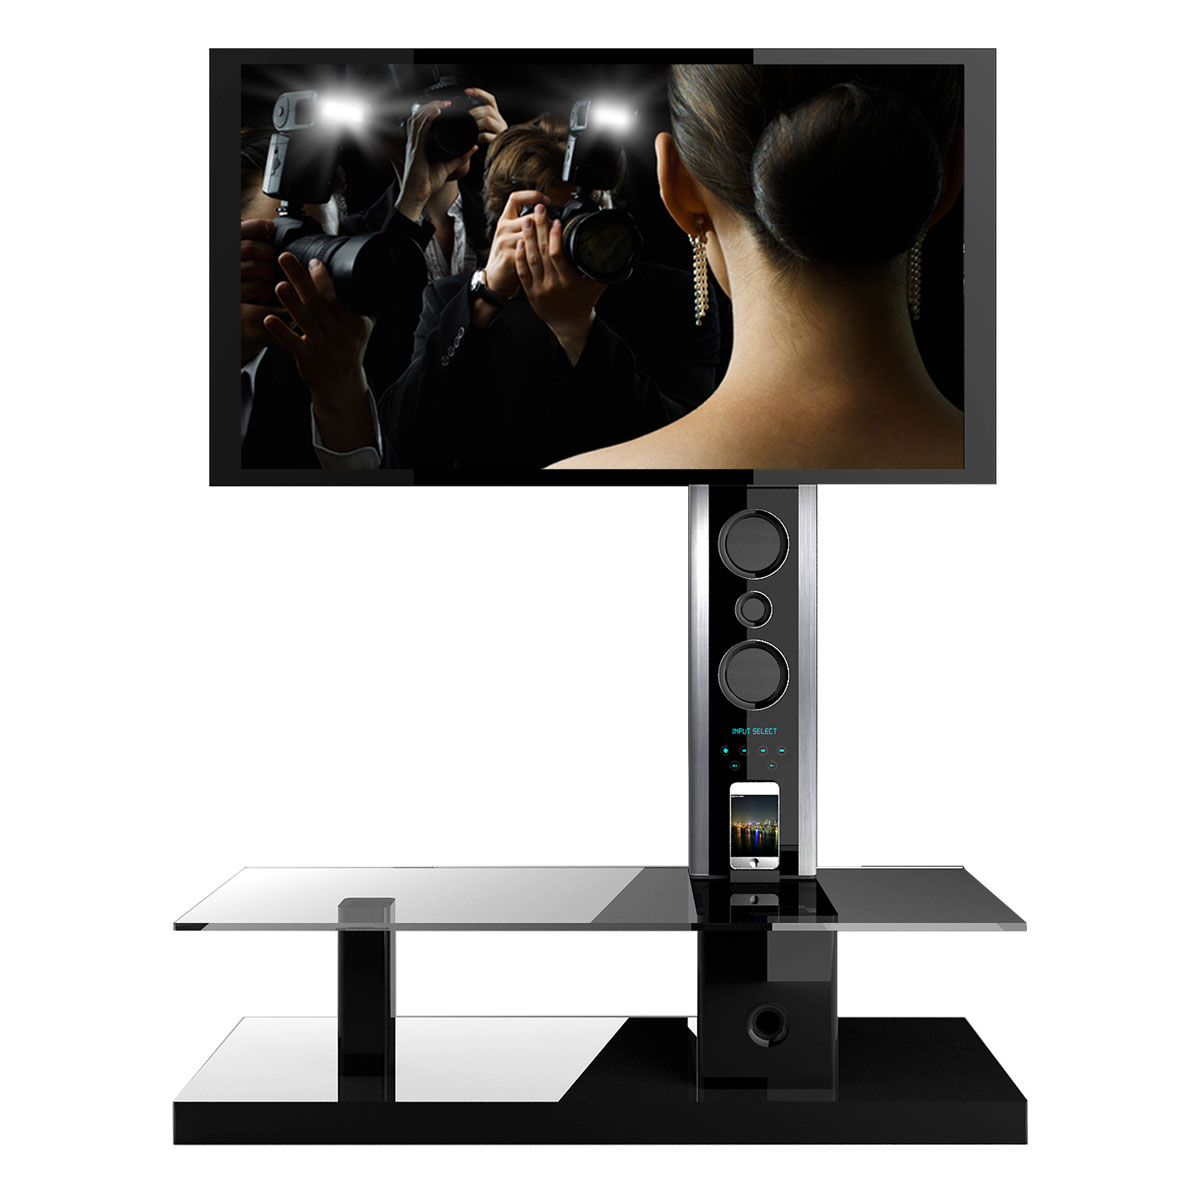 Soundvision Sv 1700 B Ensemble Home Cinema Soundvision Sur Ldlc Com